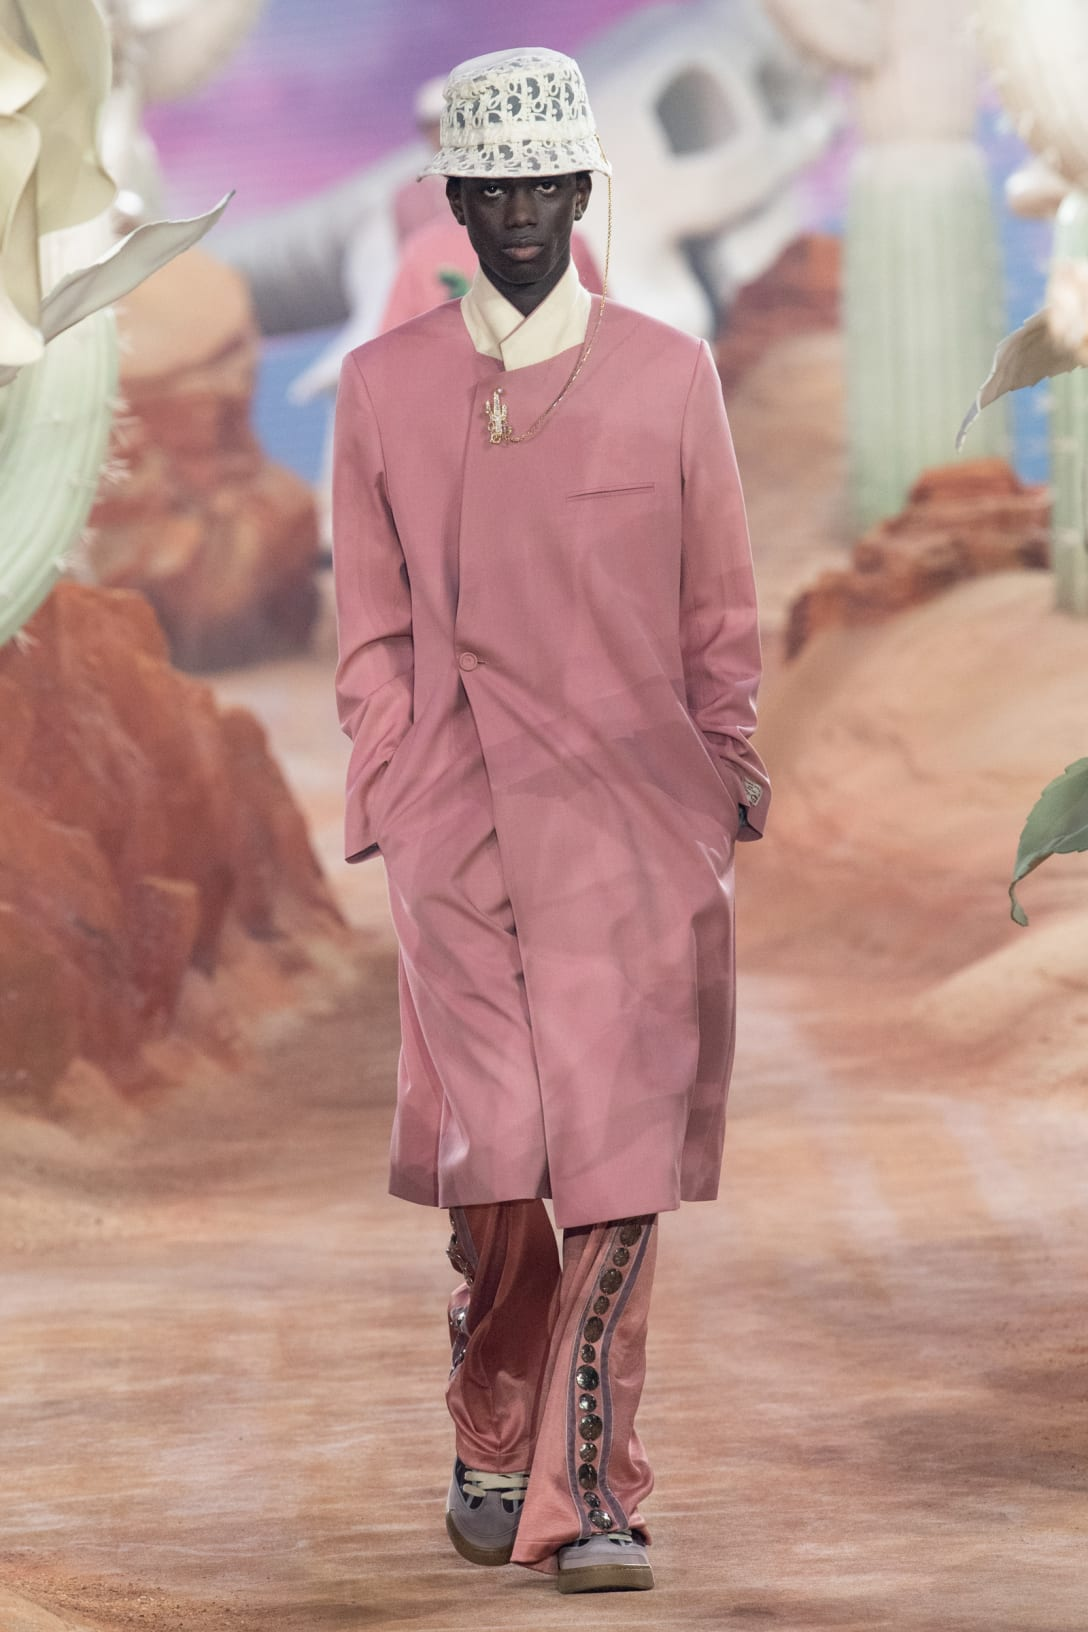 Image by DIOR